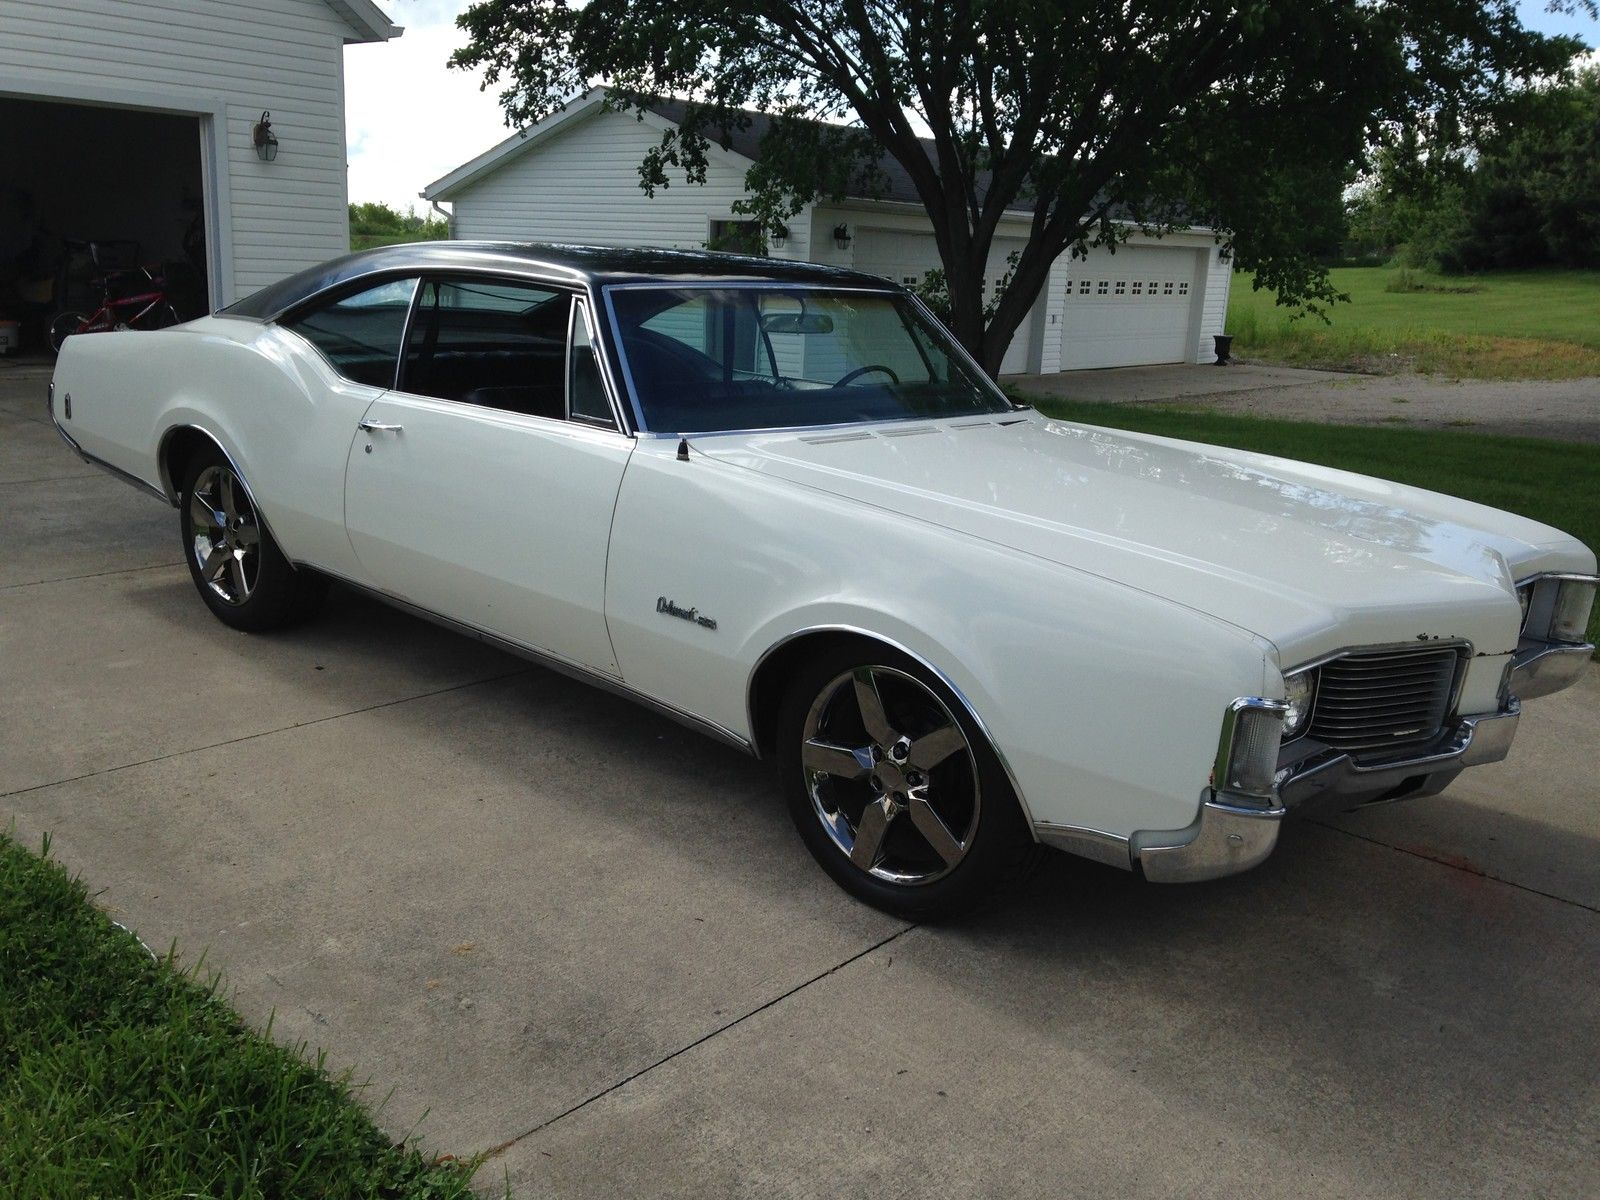 1968 Oldsmobile Delmont 88 455 7.5L 2 Door-11